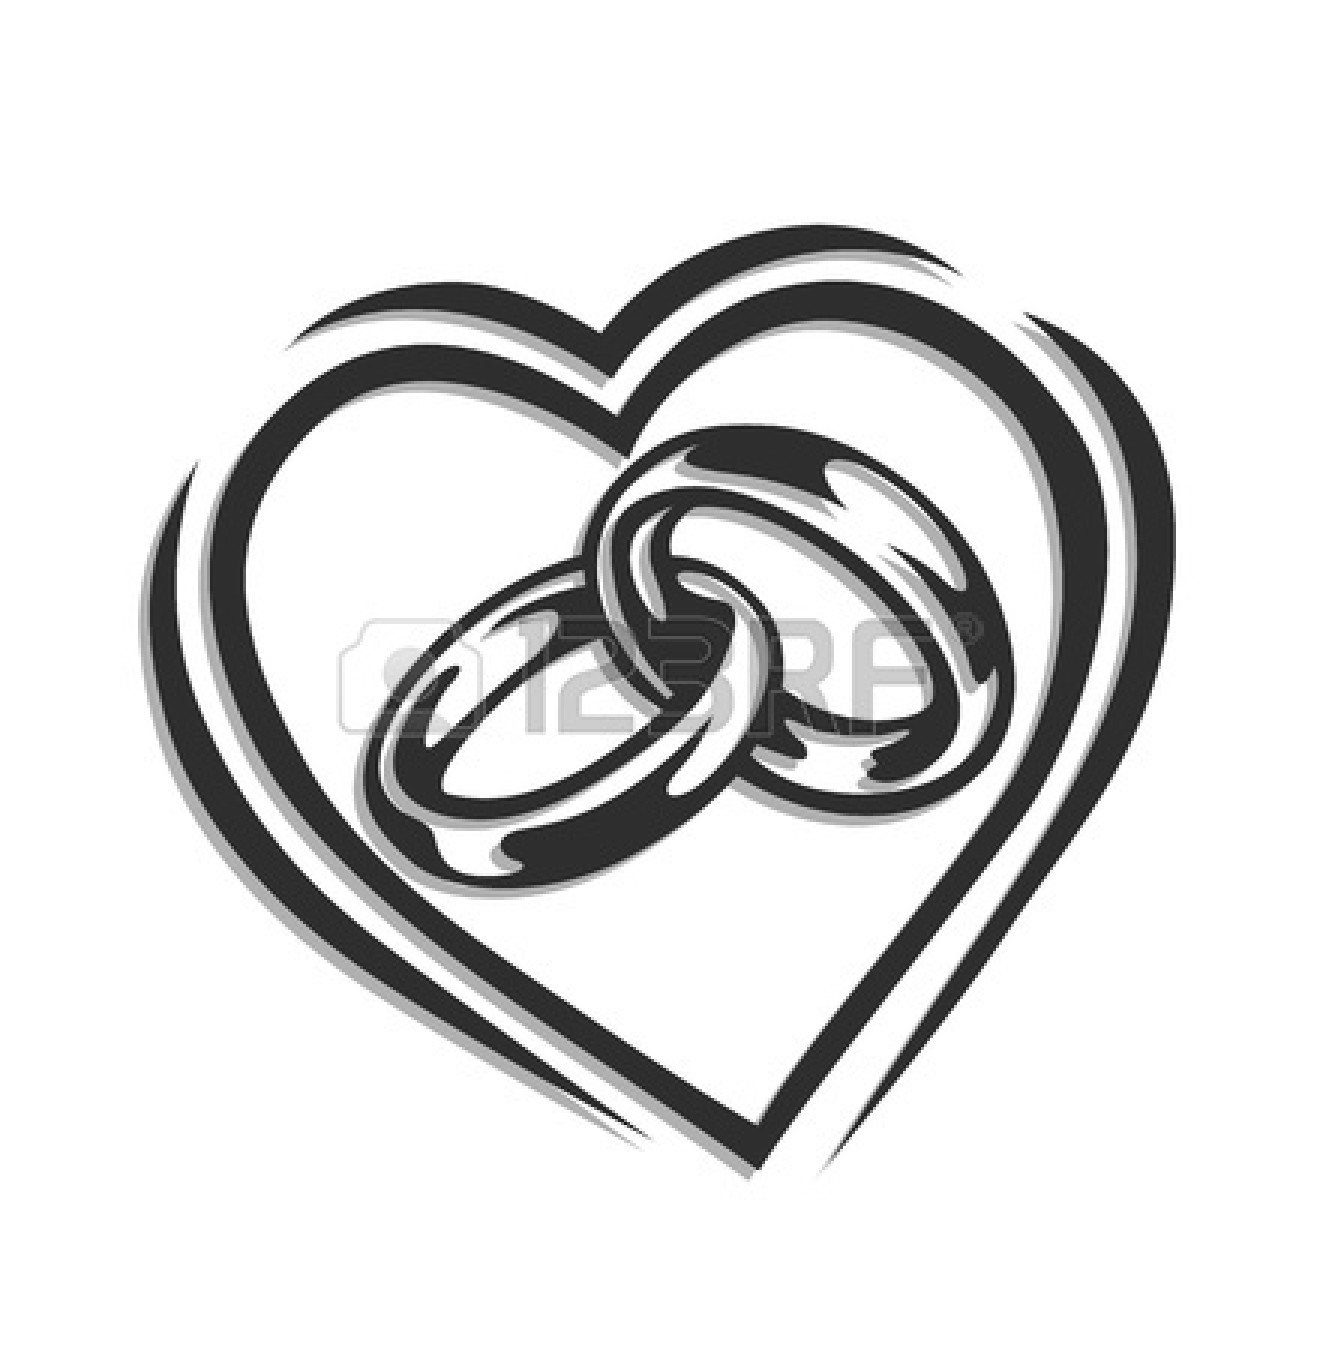 1320x1350 Silver Wedding Rings Clipart Amp Silver Wedding Rings Clip Art